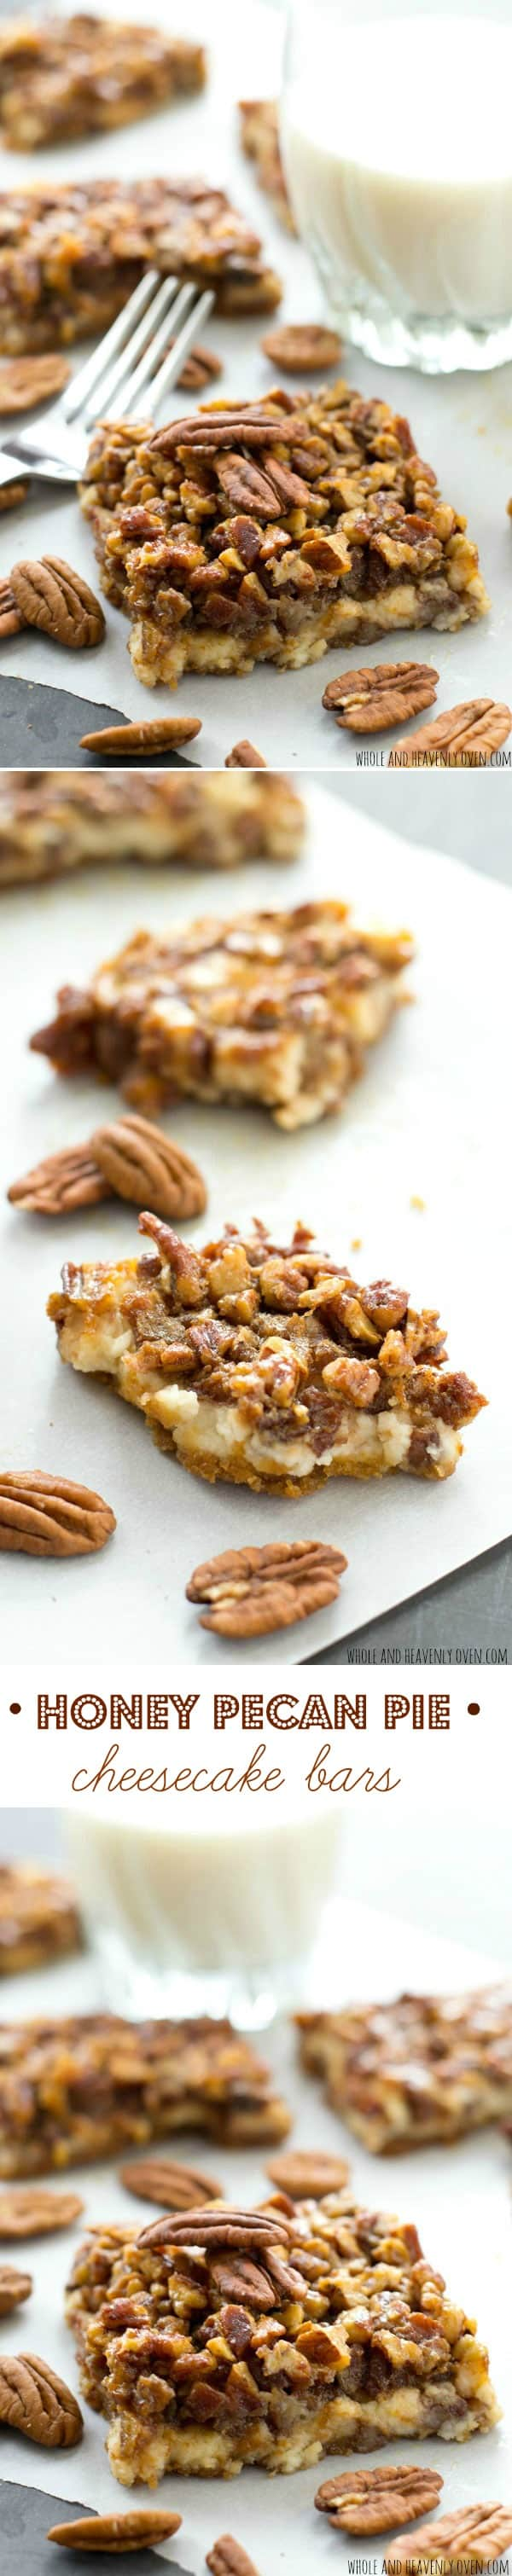 Cheesecake and honey pecan pie collide in these luscious three-layered bars---they make a perfect addition to any cookie tray! @WholeHeavenly